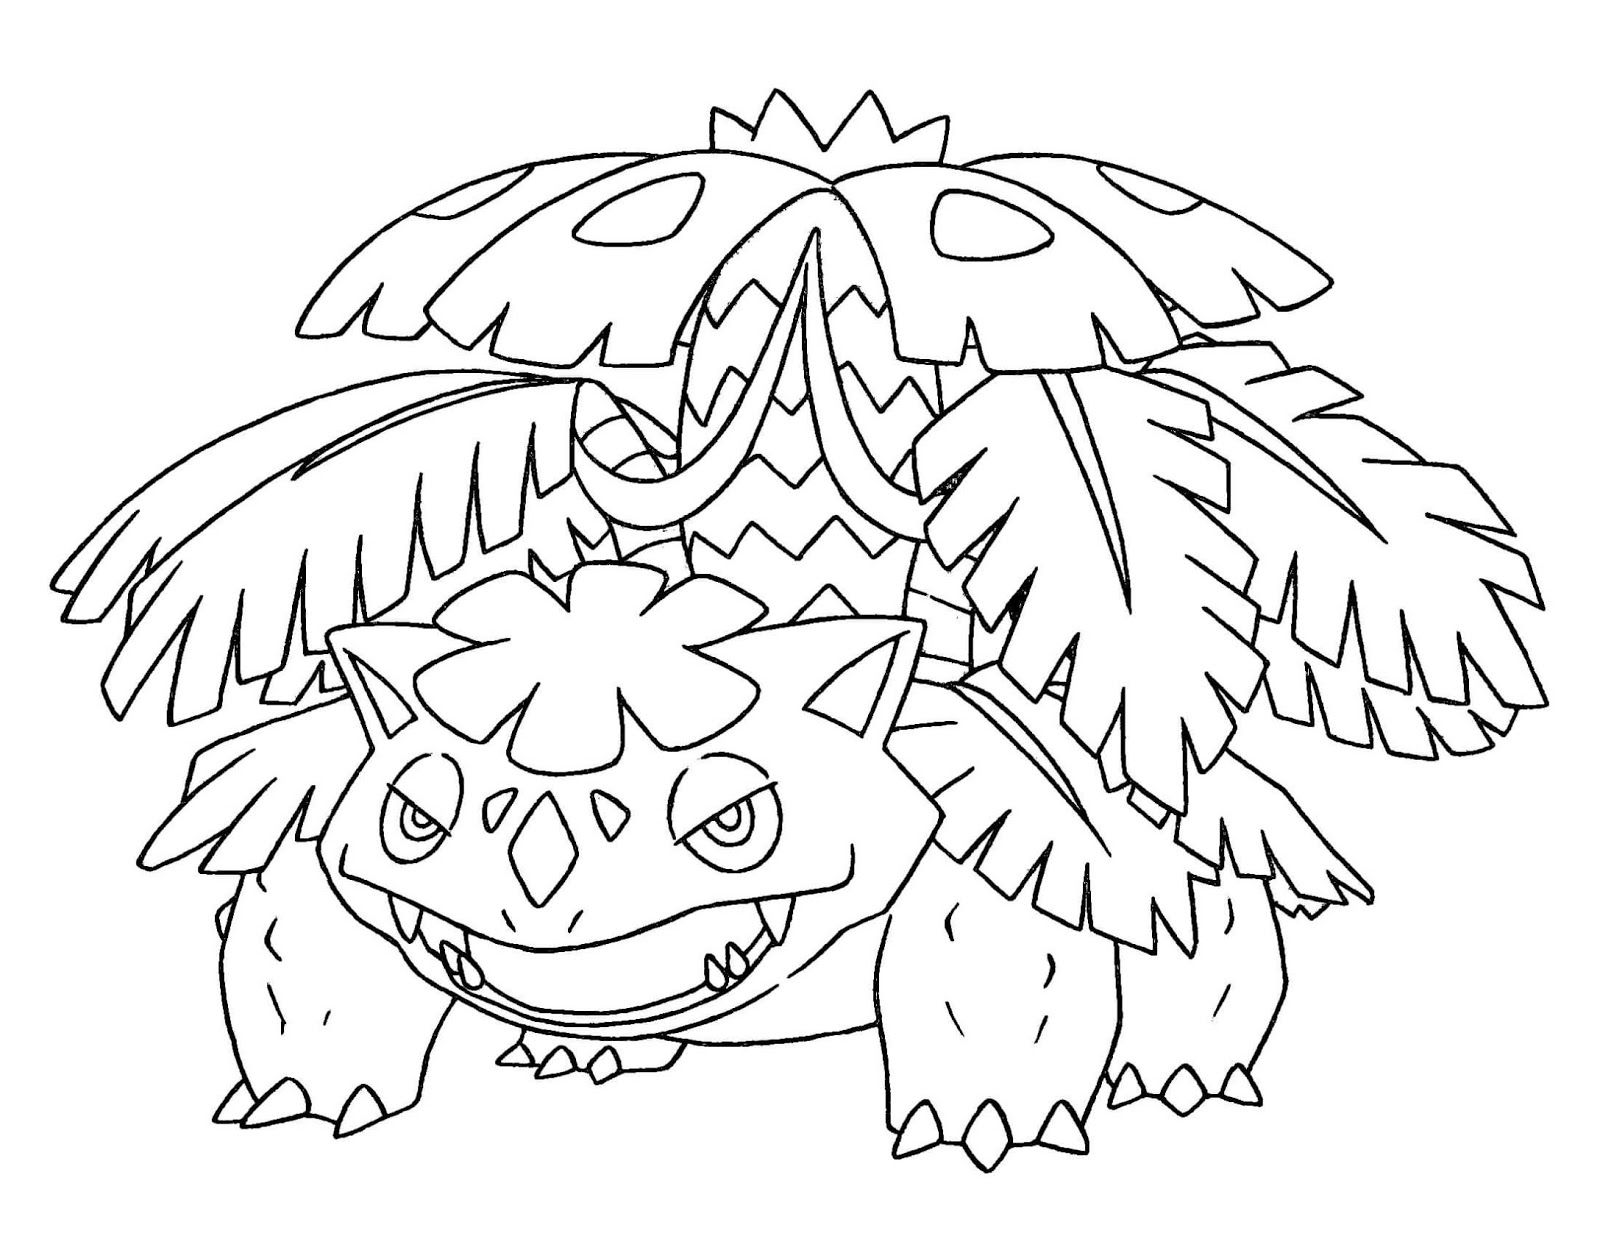 Awesome Venusaur Pokemon Coloring Pages Pokemon Coloring Pages Pokemon Coloring Animal Coloring Pages